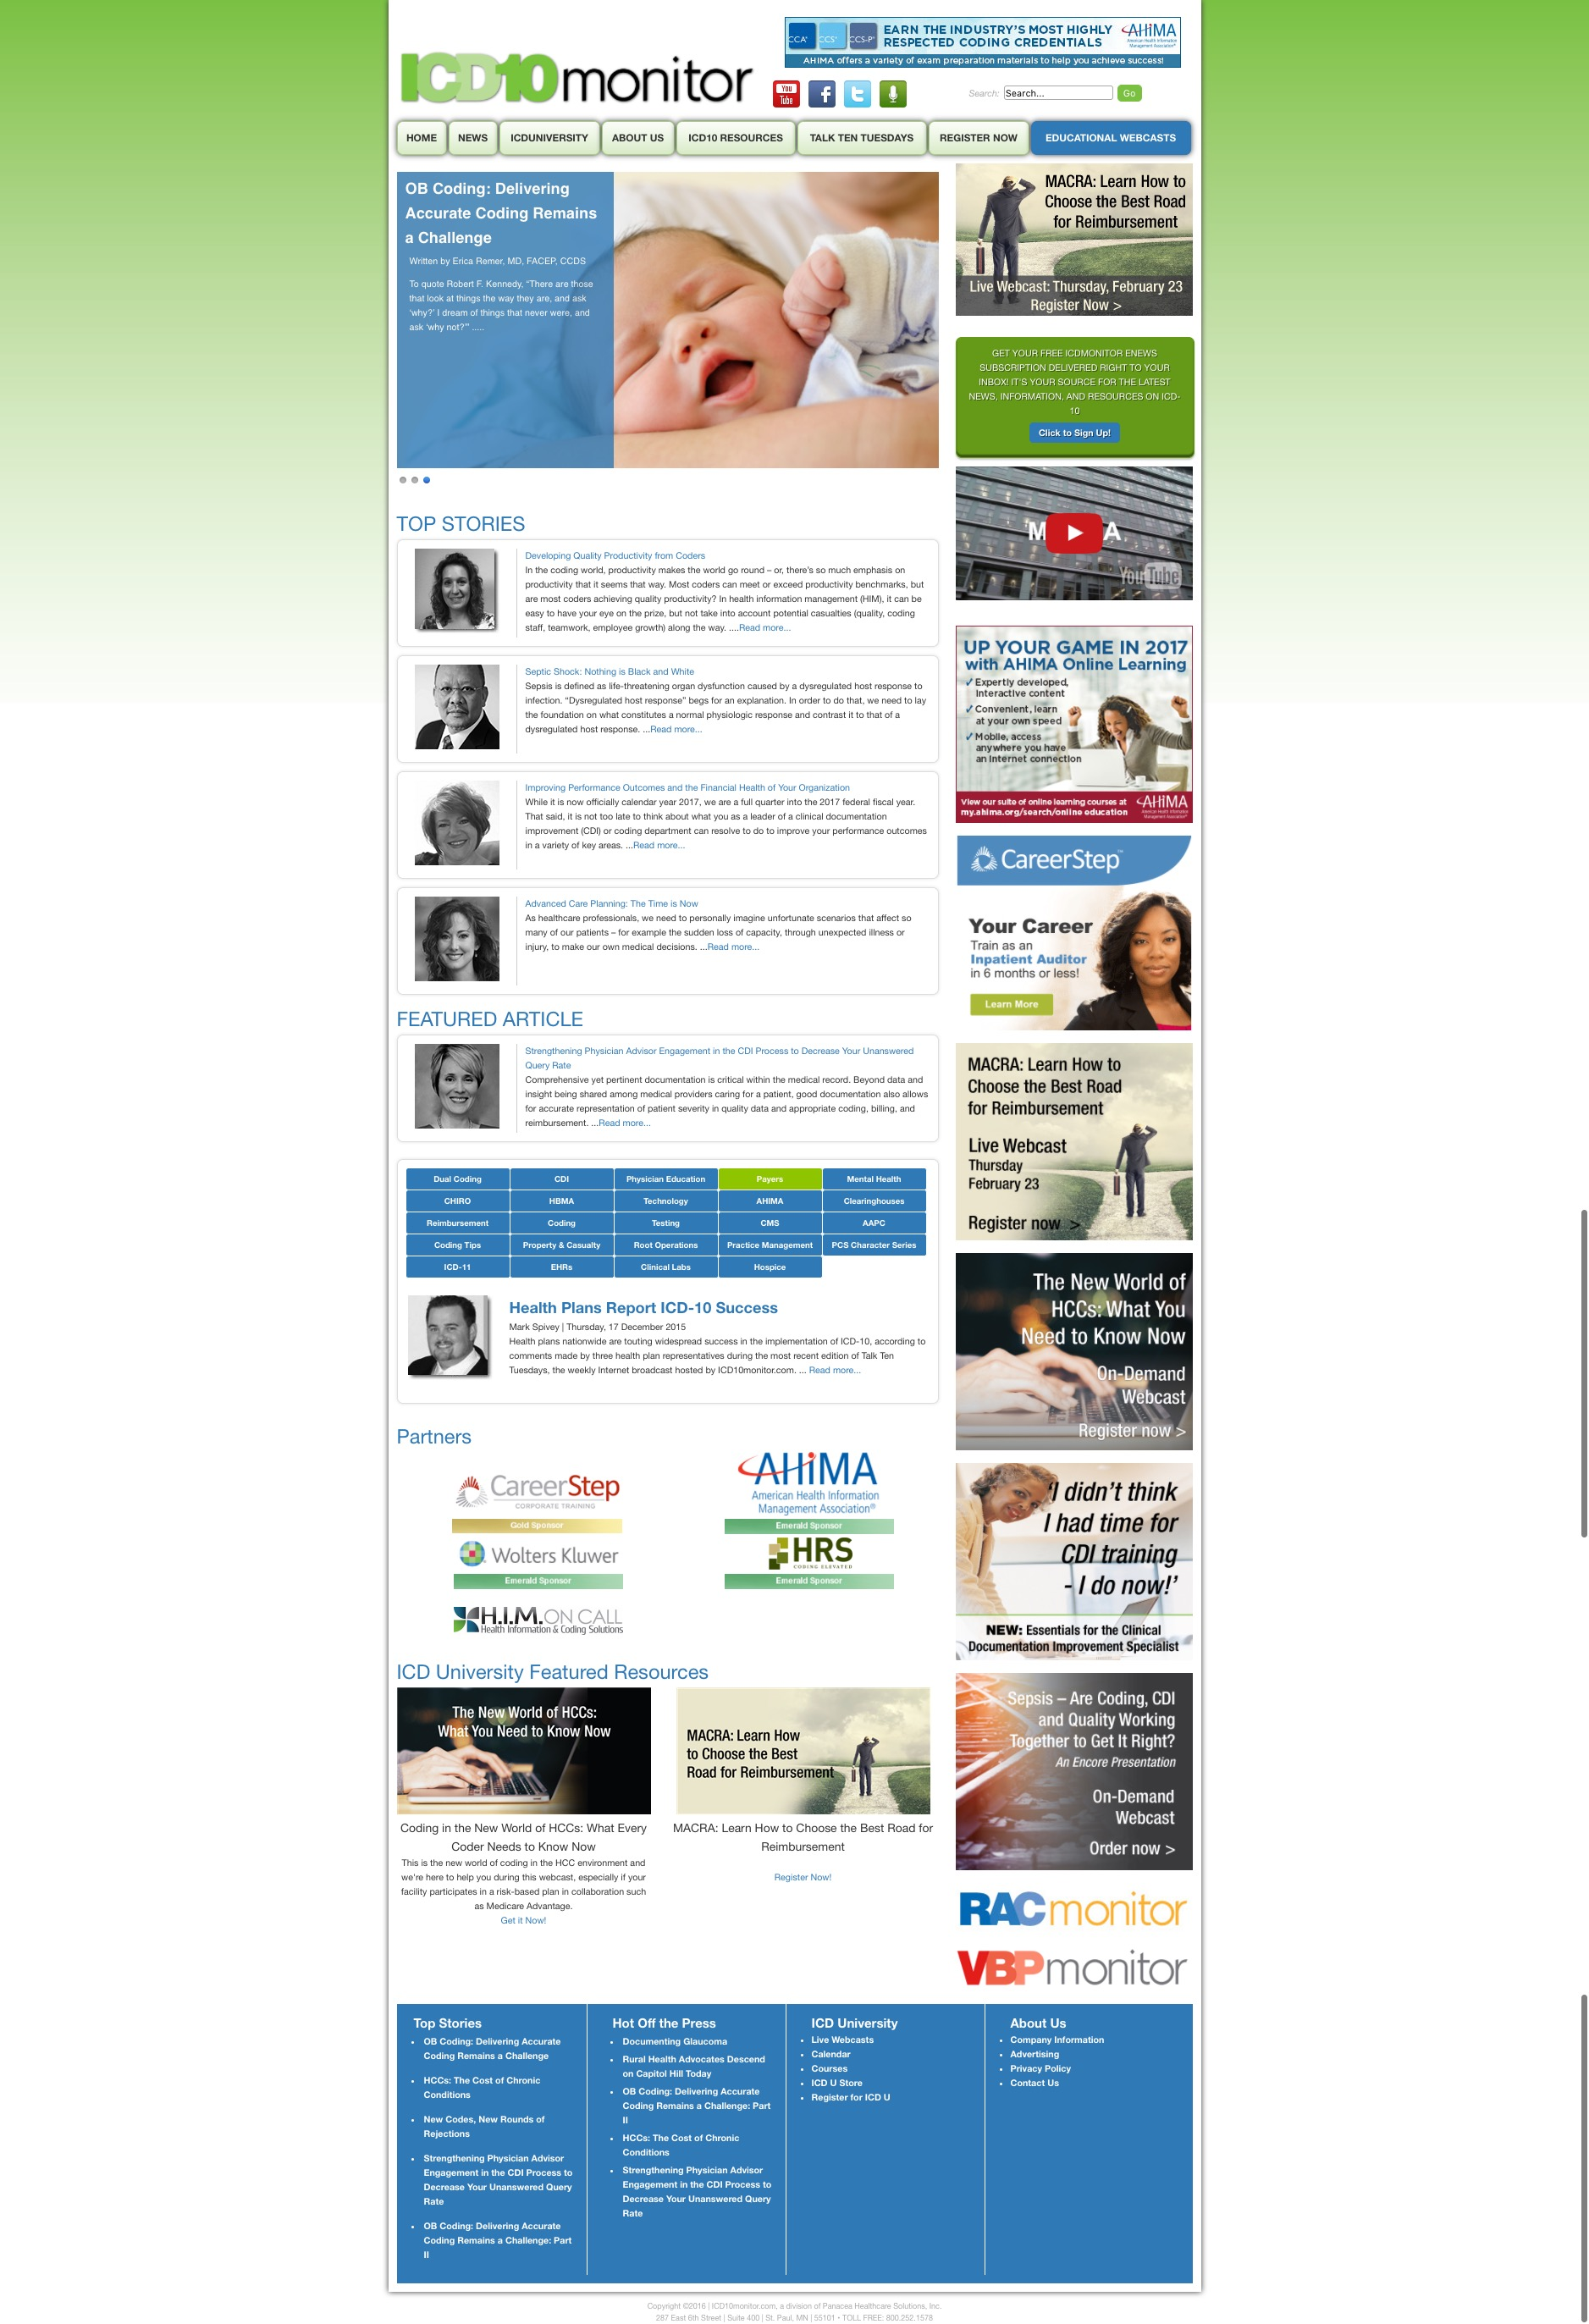 ICD10monitor.com News and Information Services for Successful ICD 10 Implementation